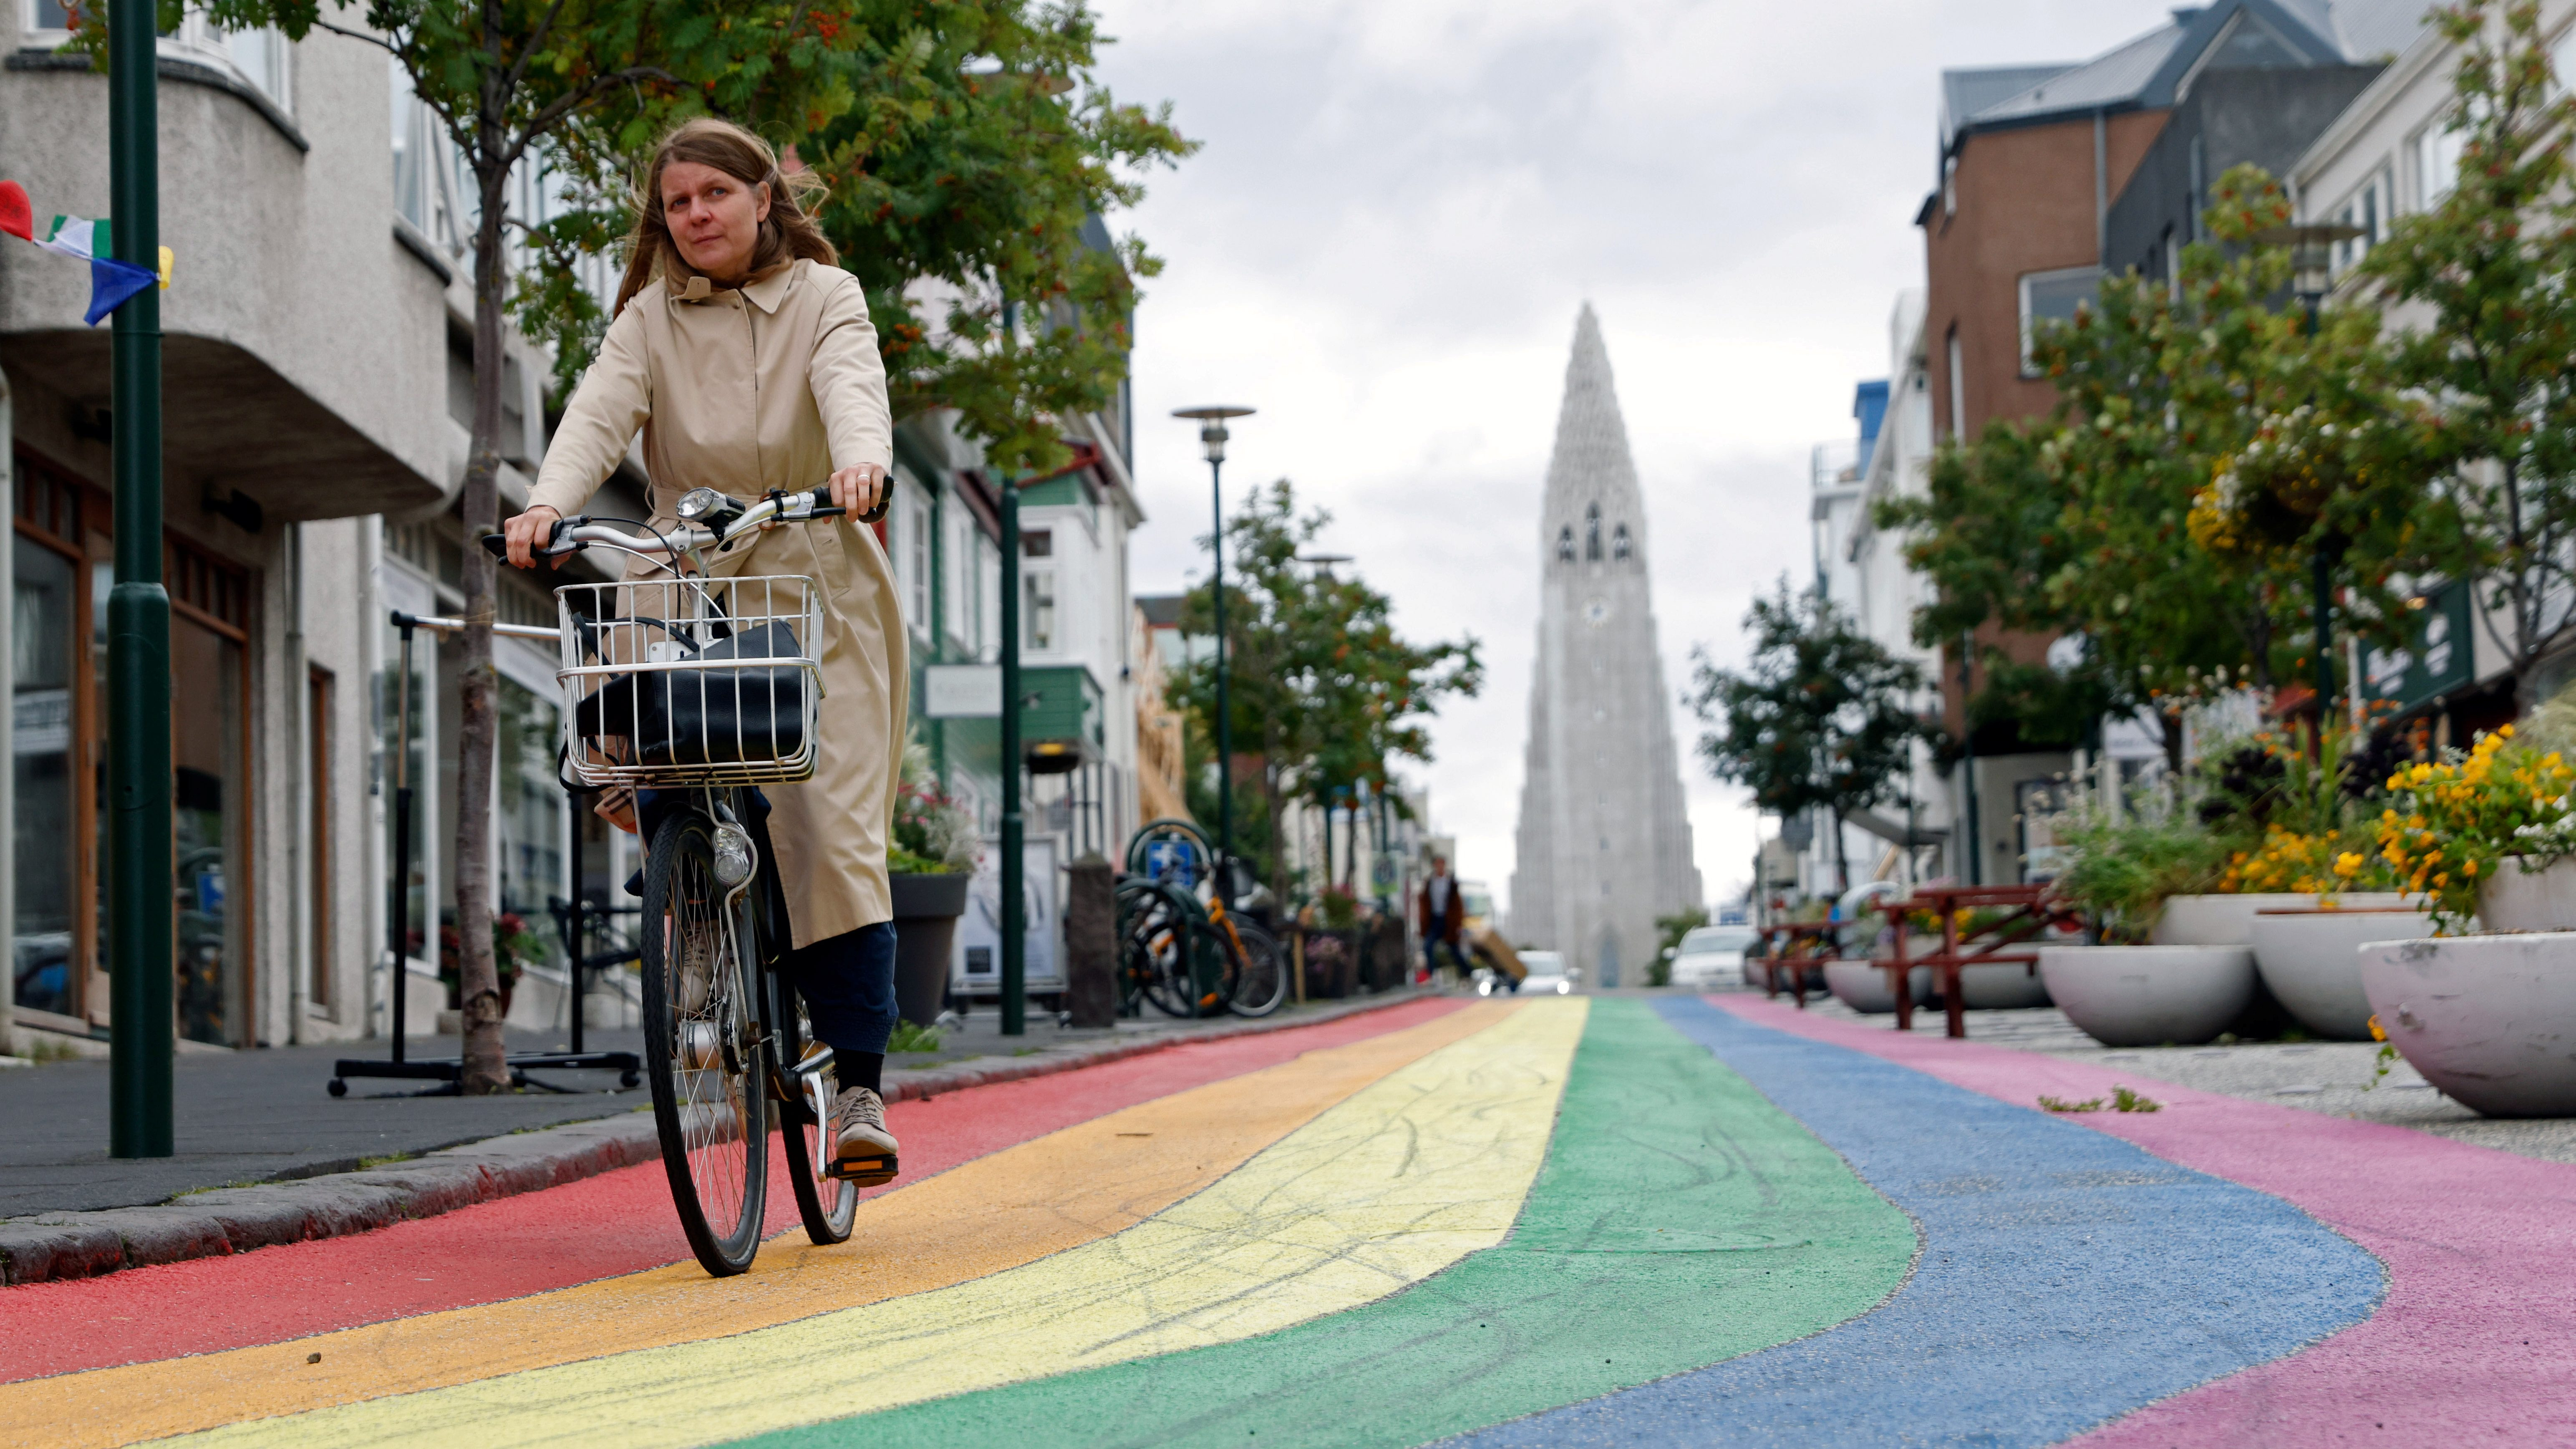 A woman cycles down a street painted in rainbow colours near the Hallgrimskirkja church, as the outbreak of the coronavirus disease (COVID-19) continues, in Reykjavik, Iceland